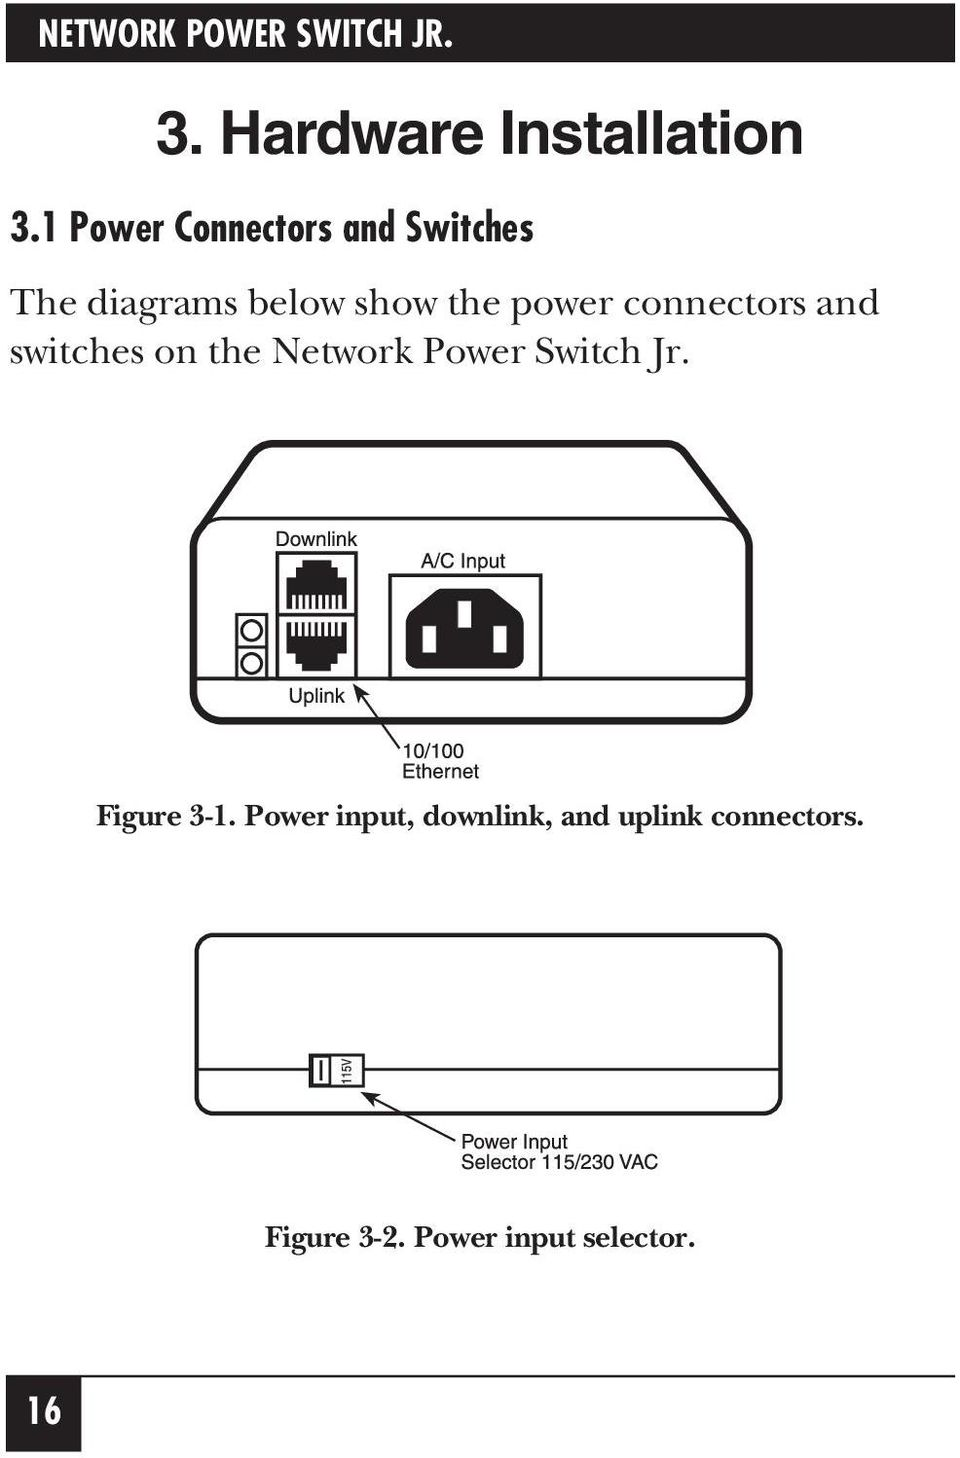 connectors and switches on the Network Power Switch Jr. Figure 3-1.